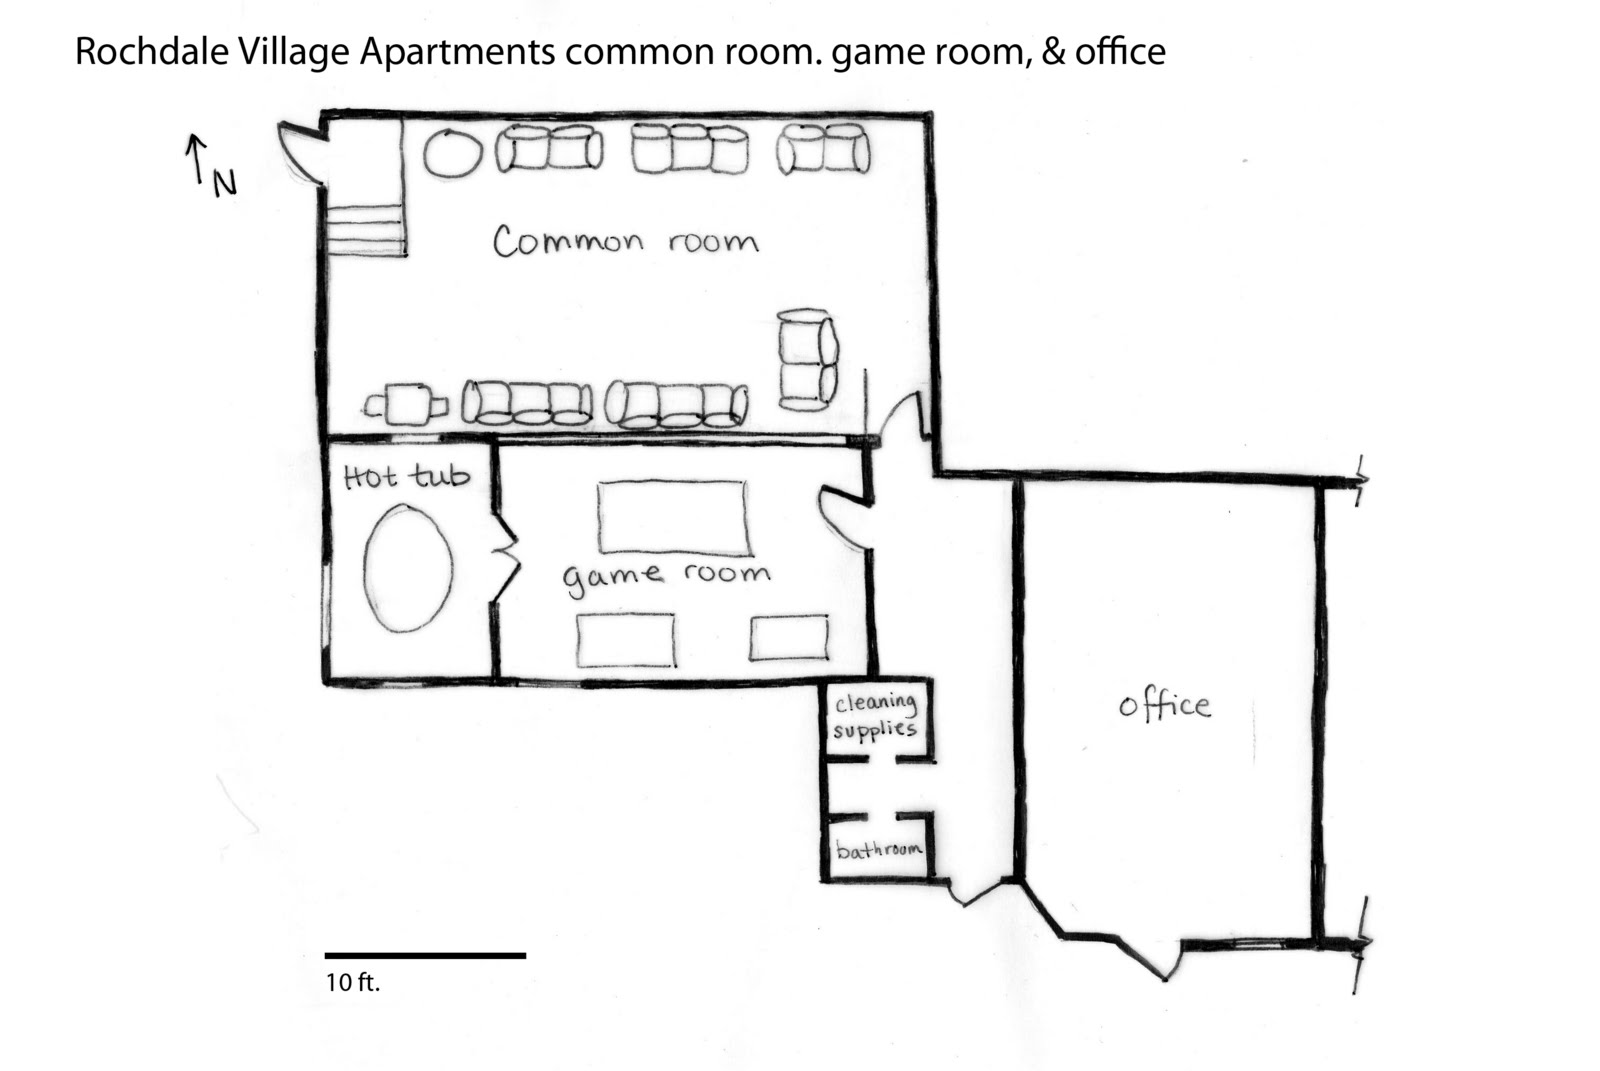 The Most Active Common Es Are Laundry Room Office And Pool Table Is Used For Social Events